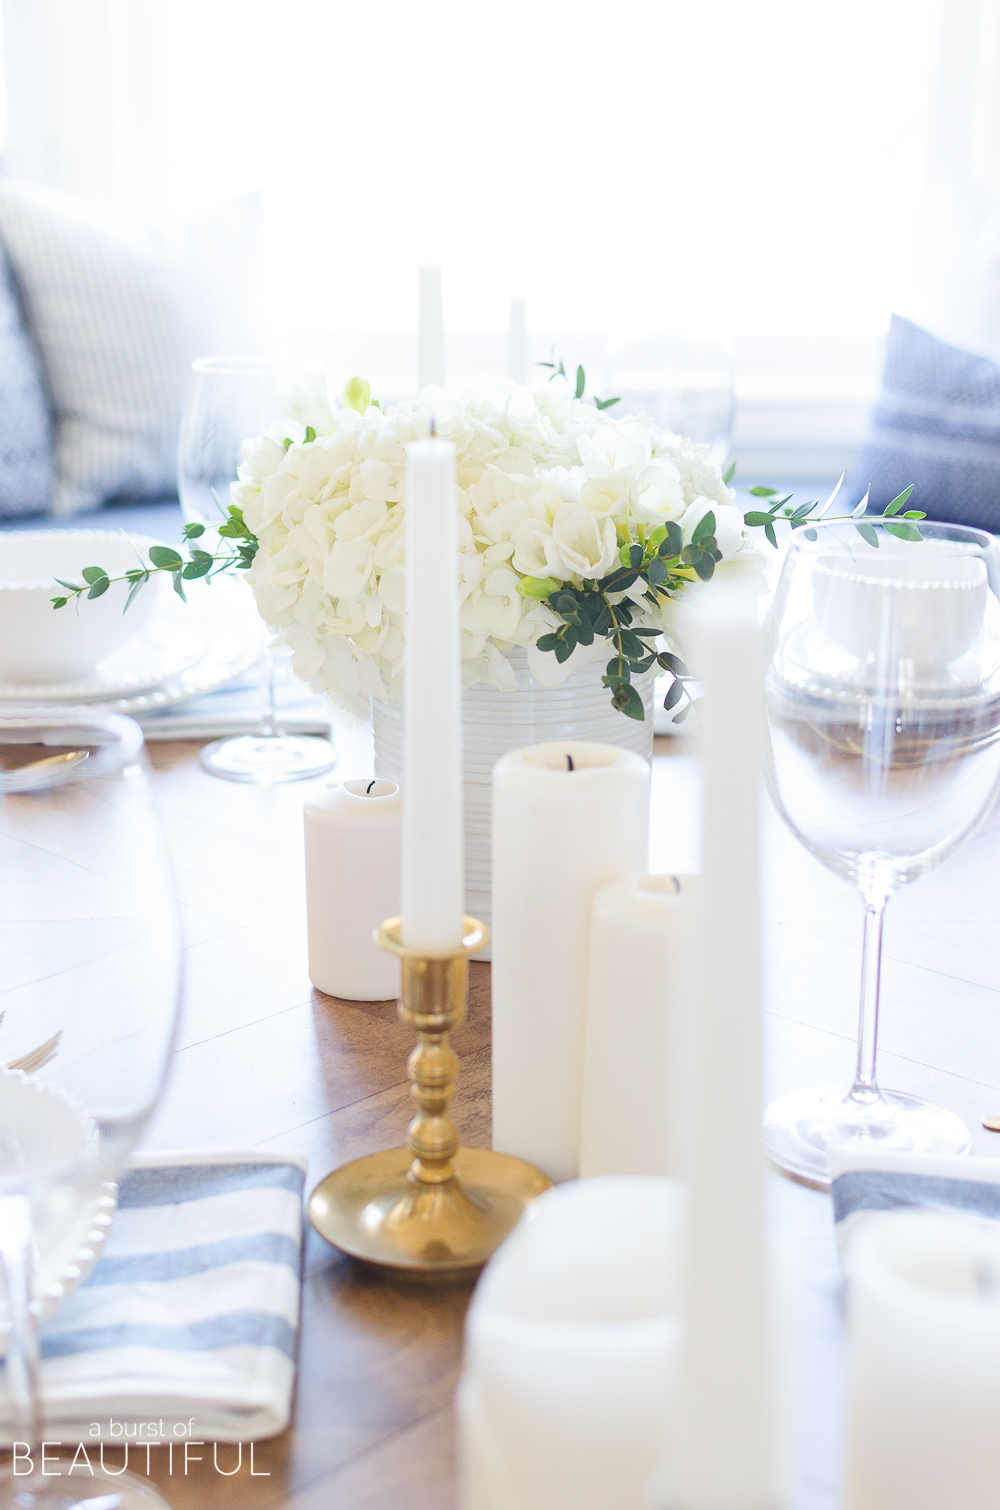 A simple spring tablescape set in a classic blue and white color palette with a centerpiece of white hydrangeas and crocuses leads to easy spring entertaining.